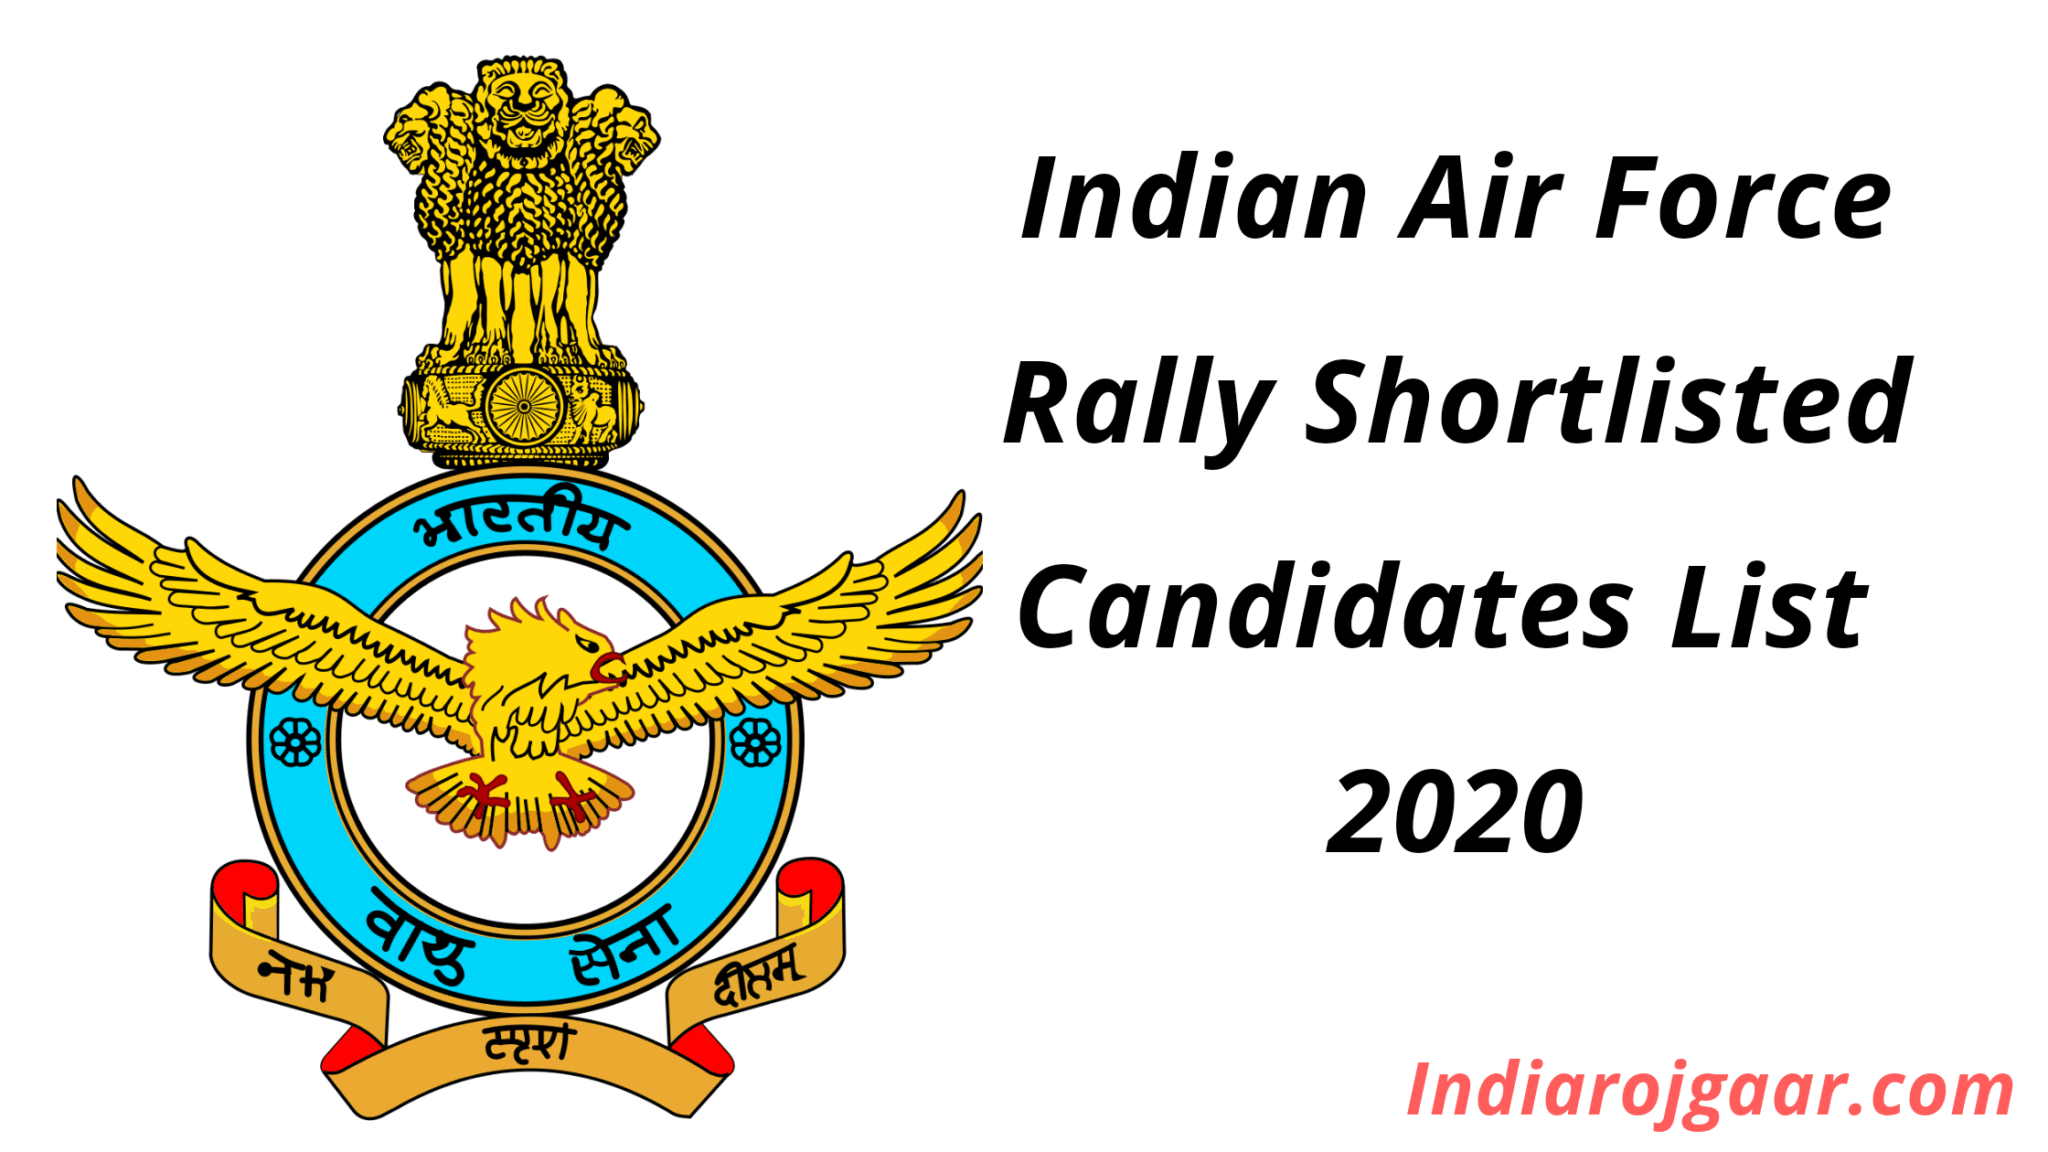 Indian Air Force Rally Shortlisted Candidates List 2020